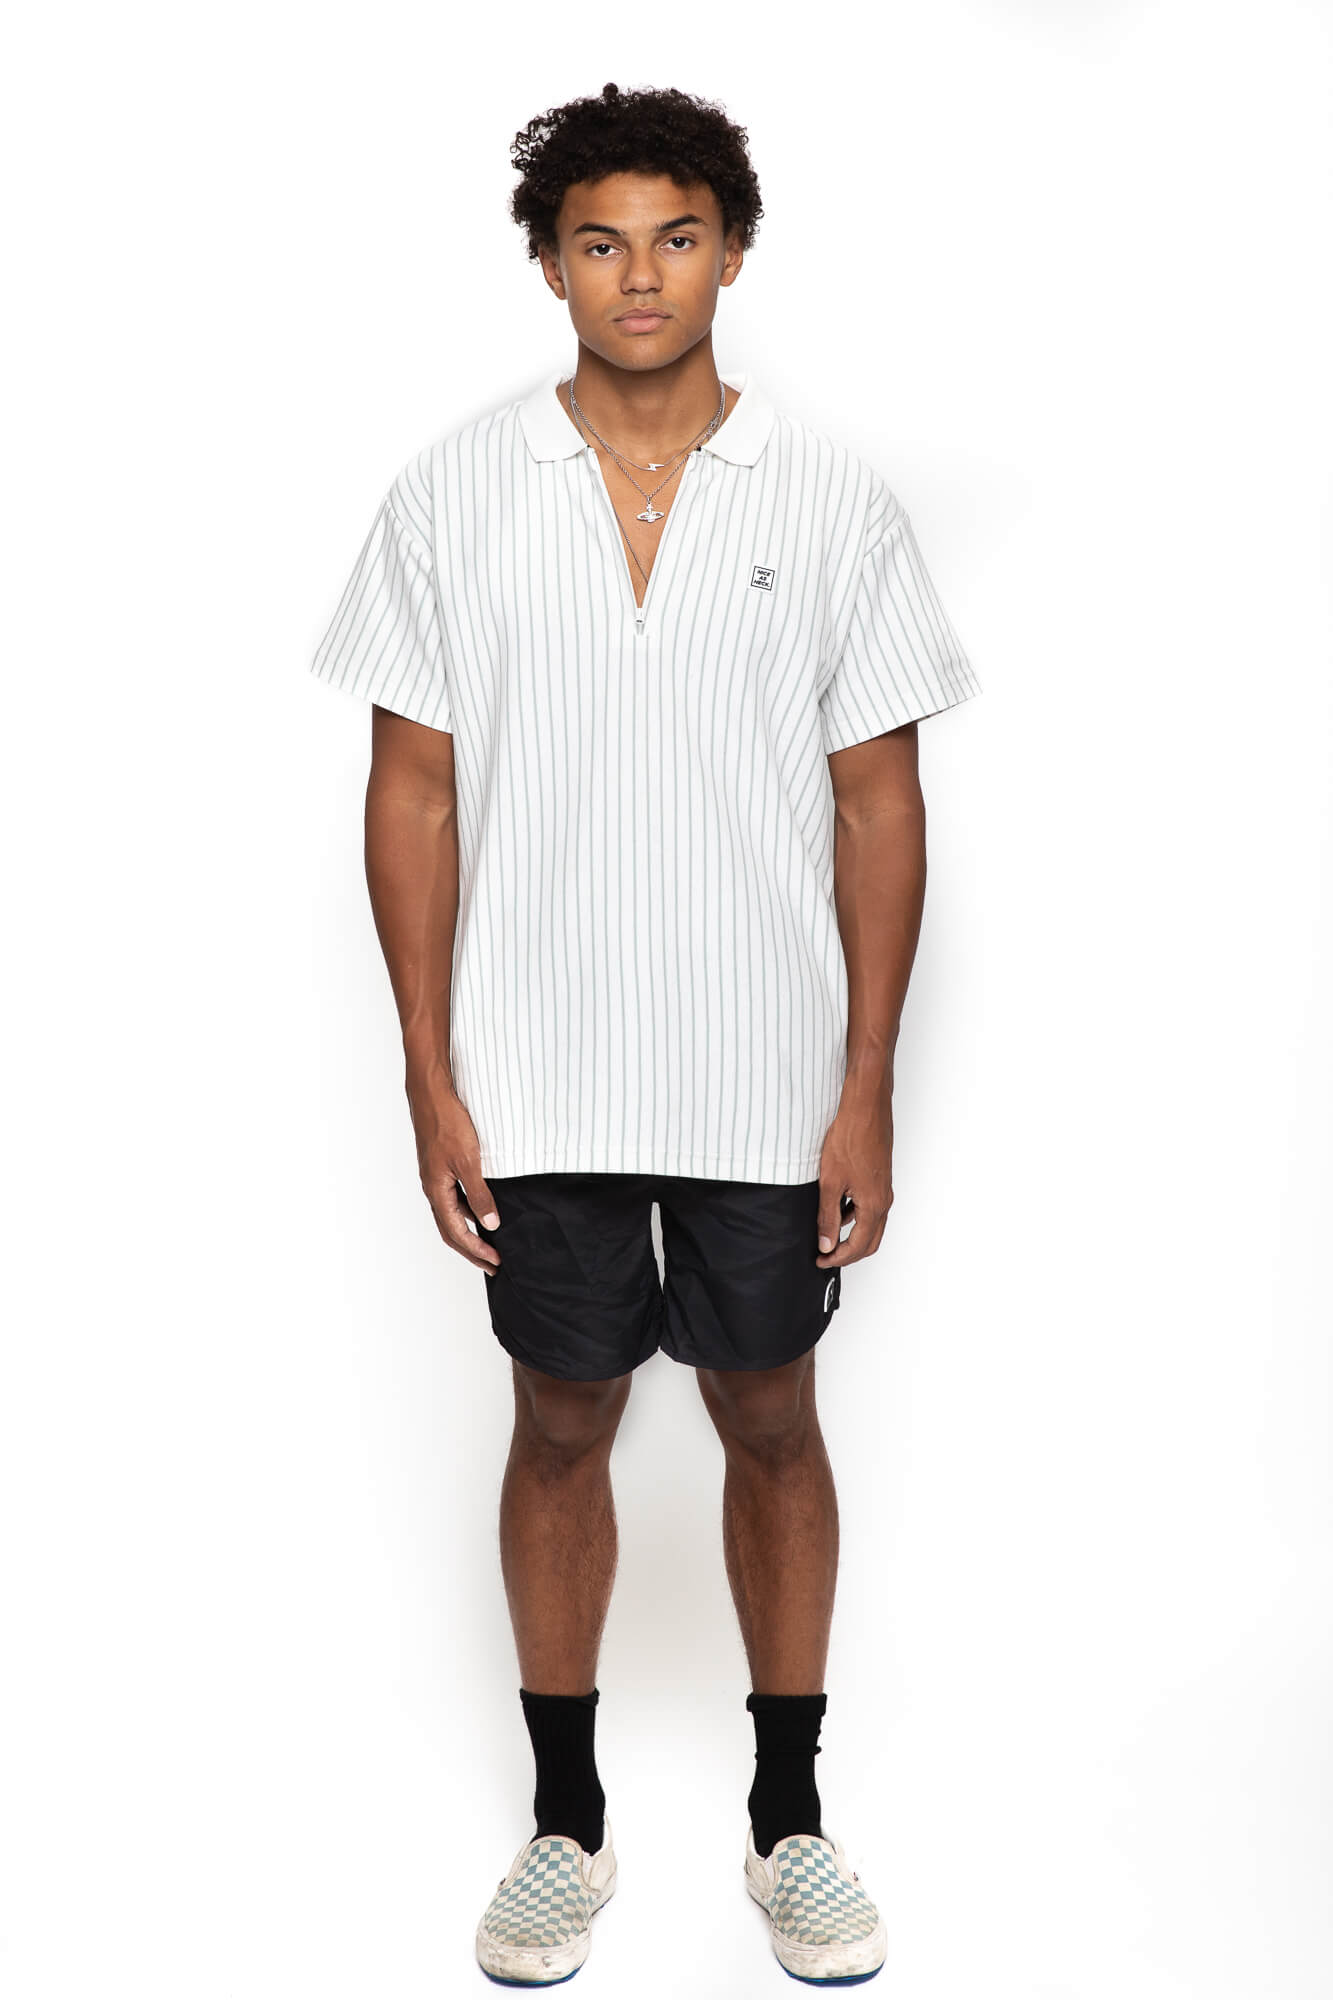 front view of male model wearing the d plus polo